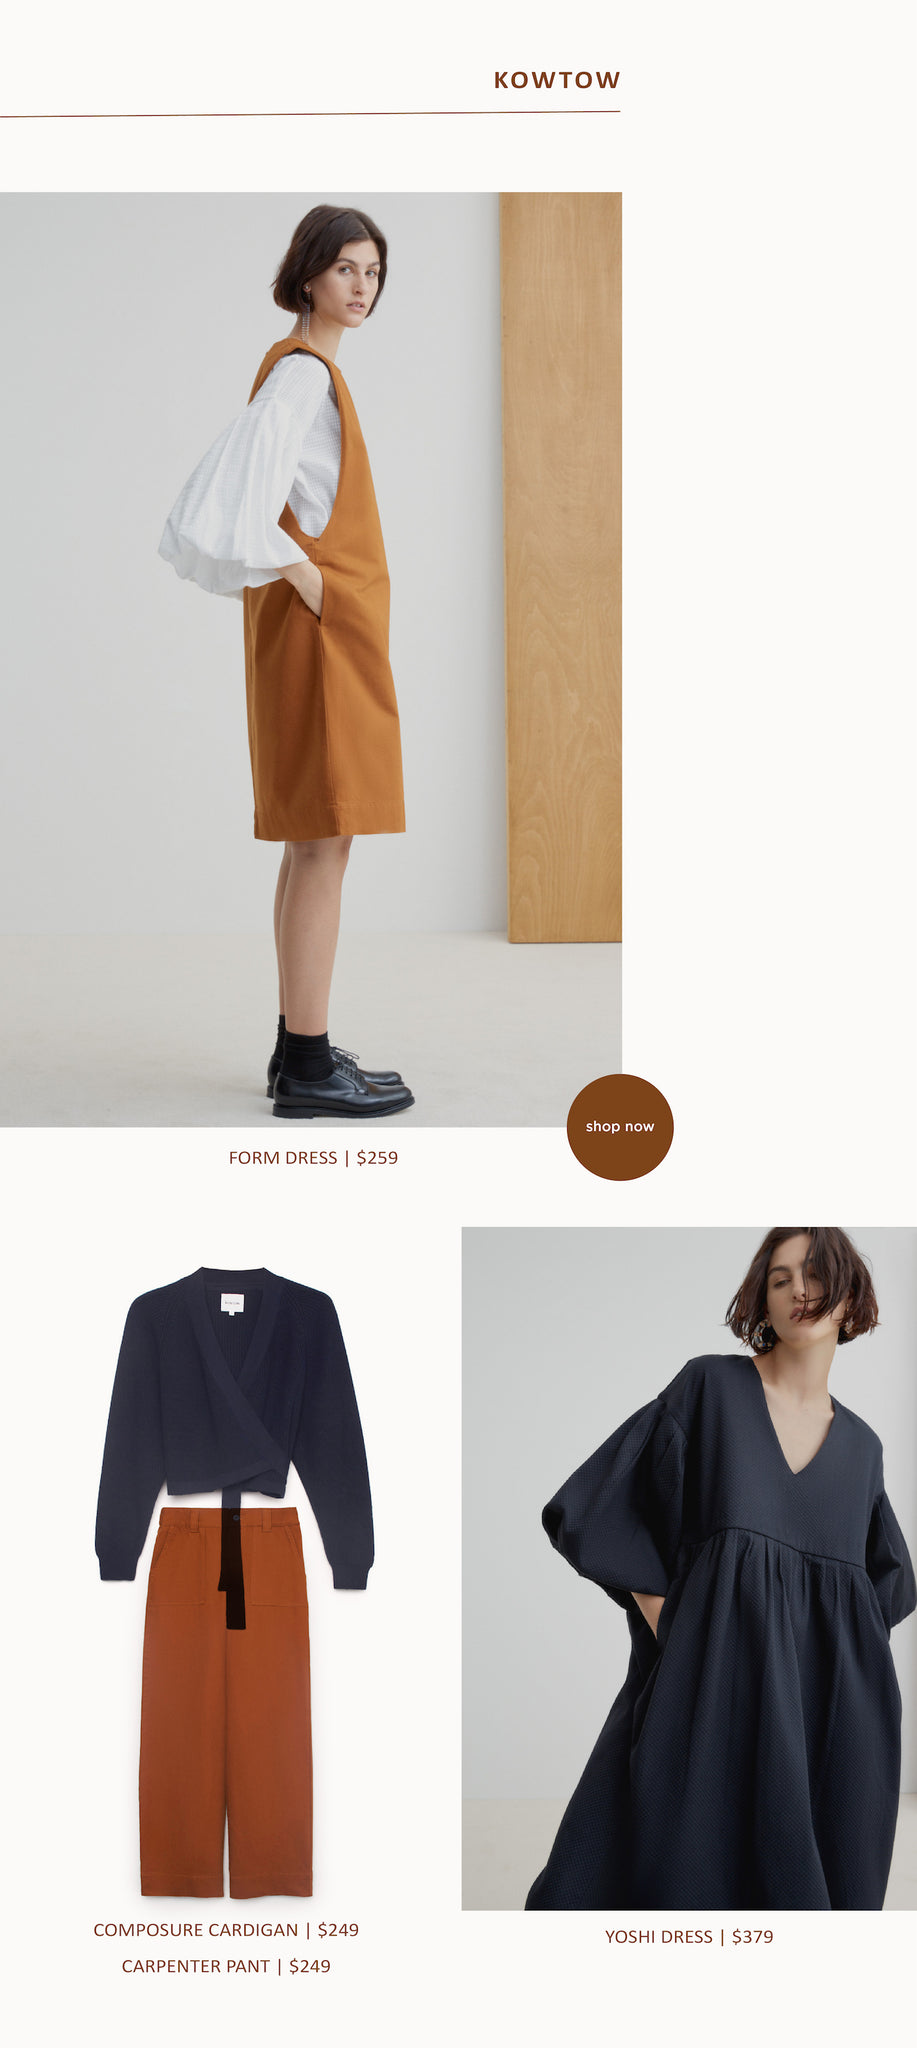 Paper Plane - Wardrobe Update - Kowtow - Elk - Velvet Canyon - In Store Now - Mount Maunganui